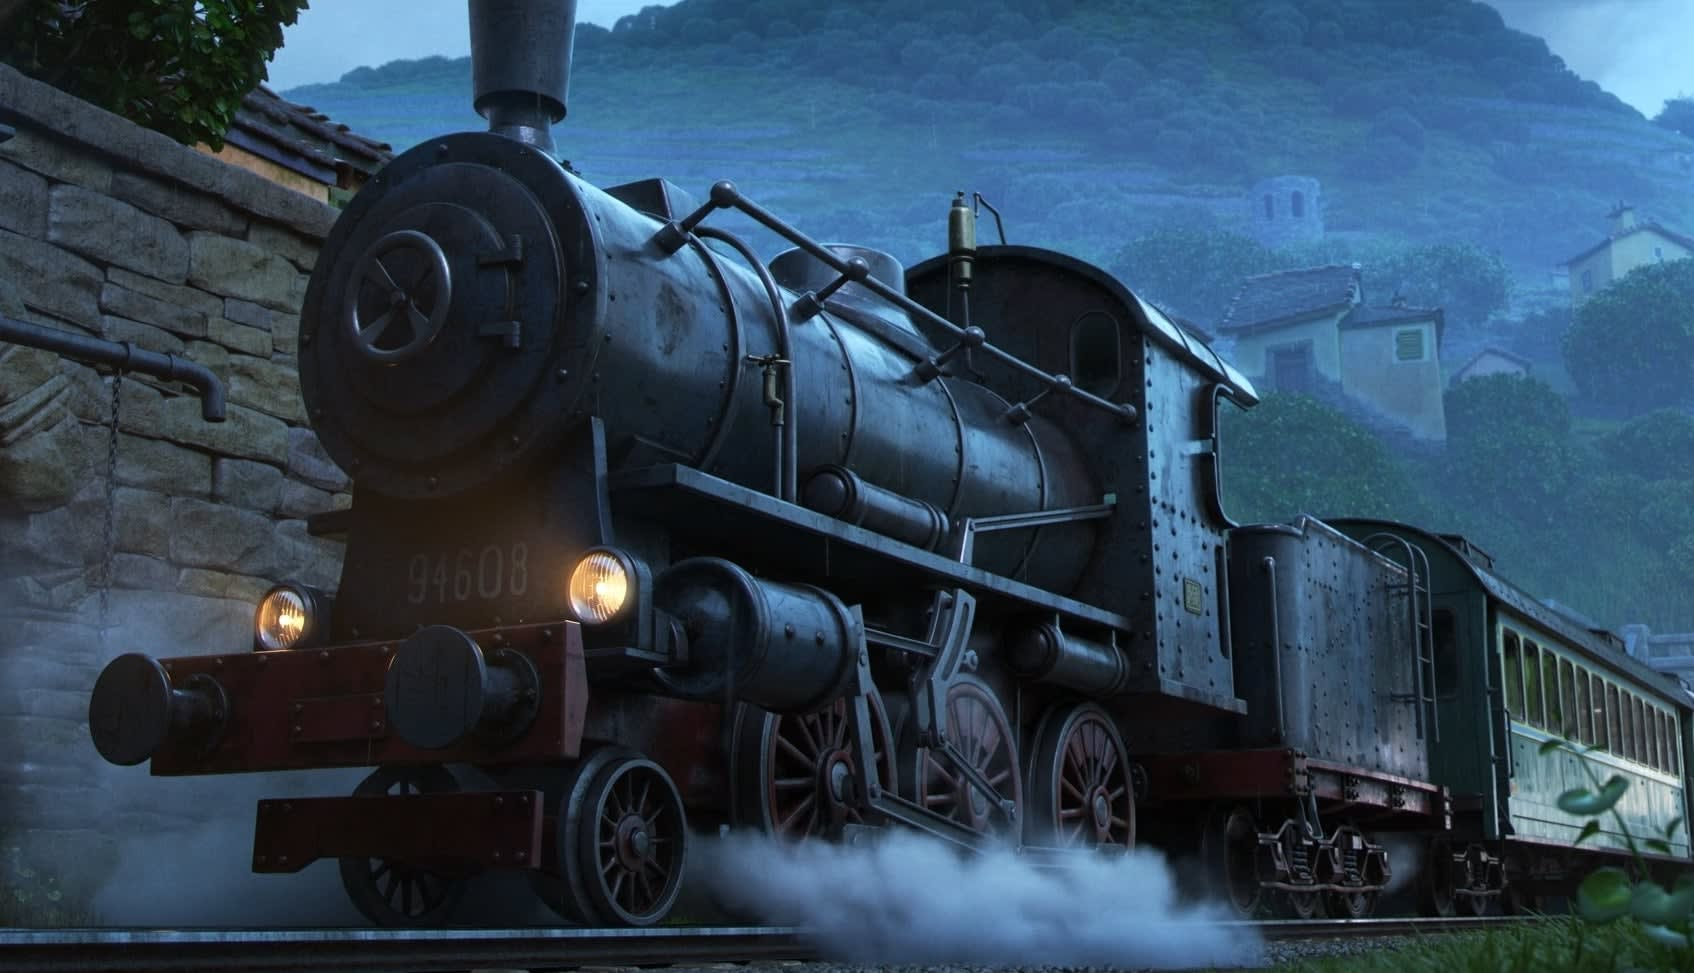 A steam engine standing at a station.